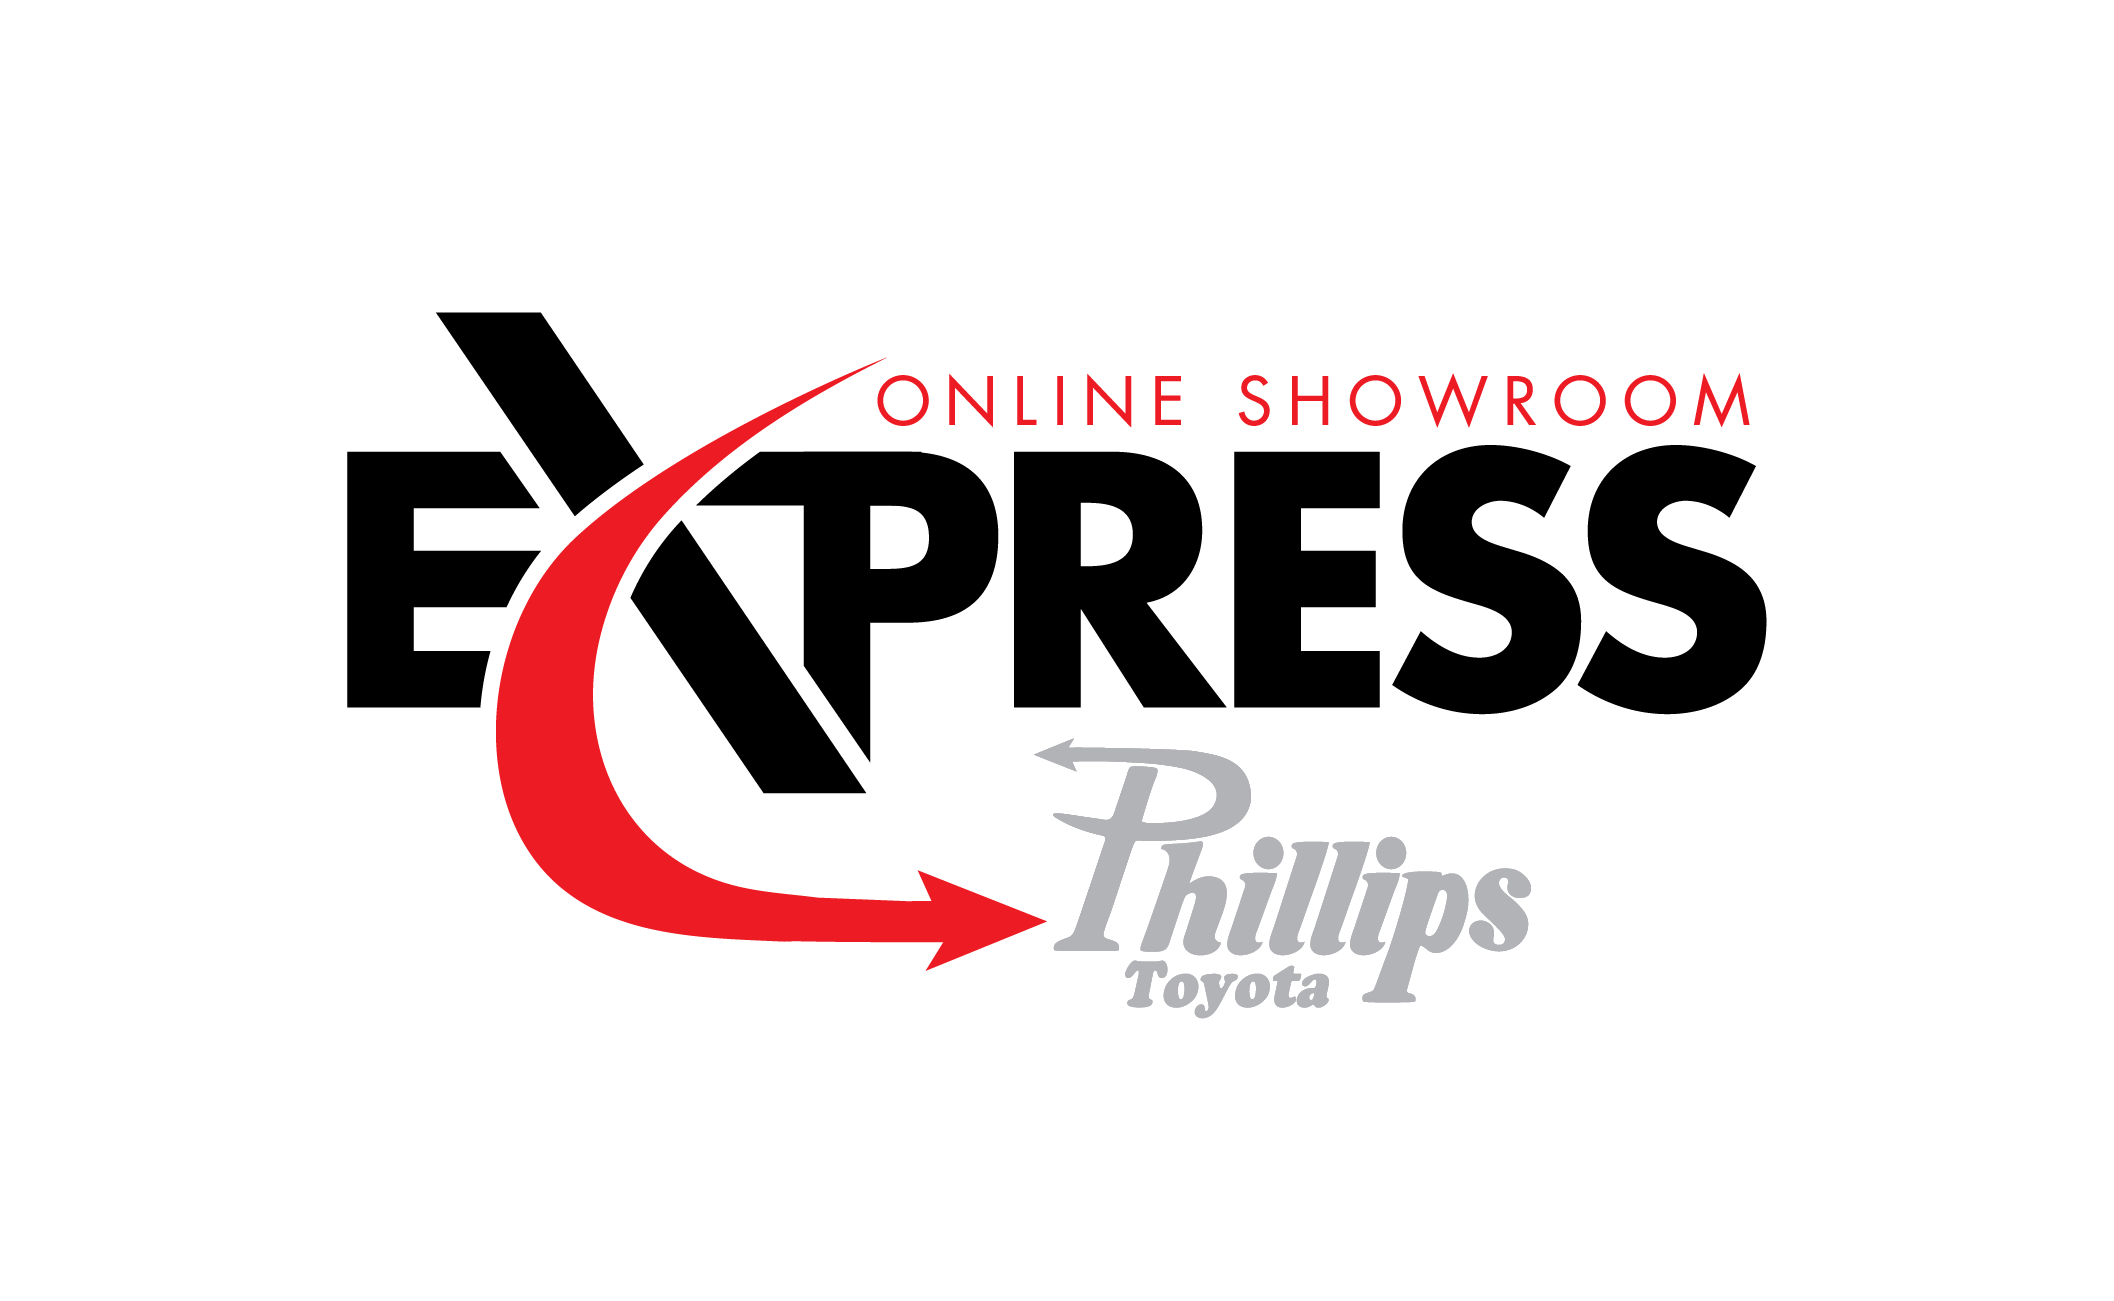 Phillips Toyota